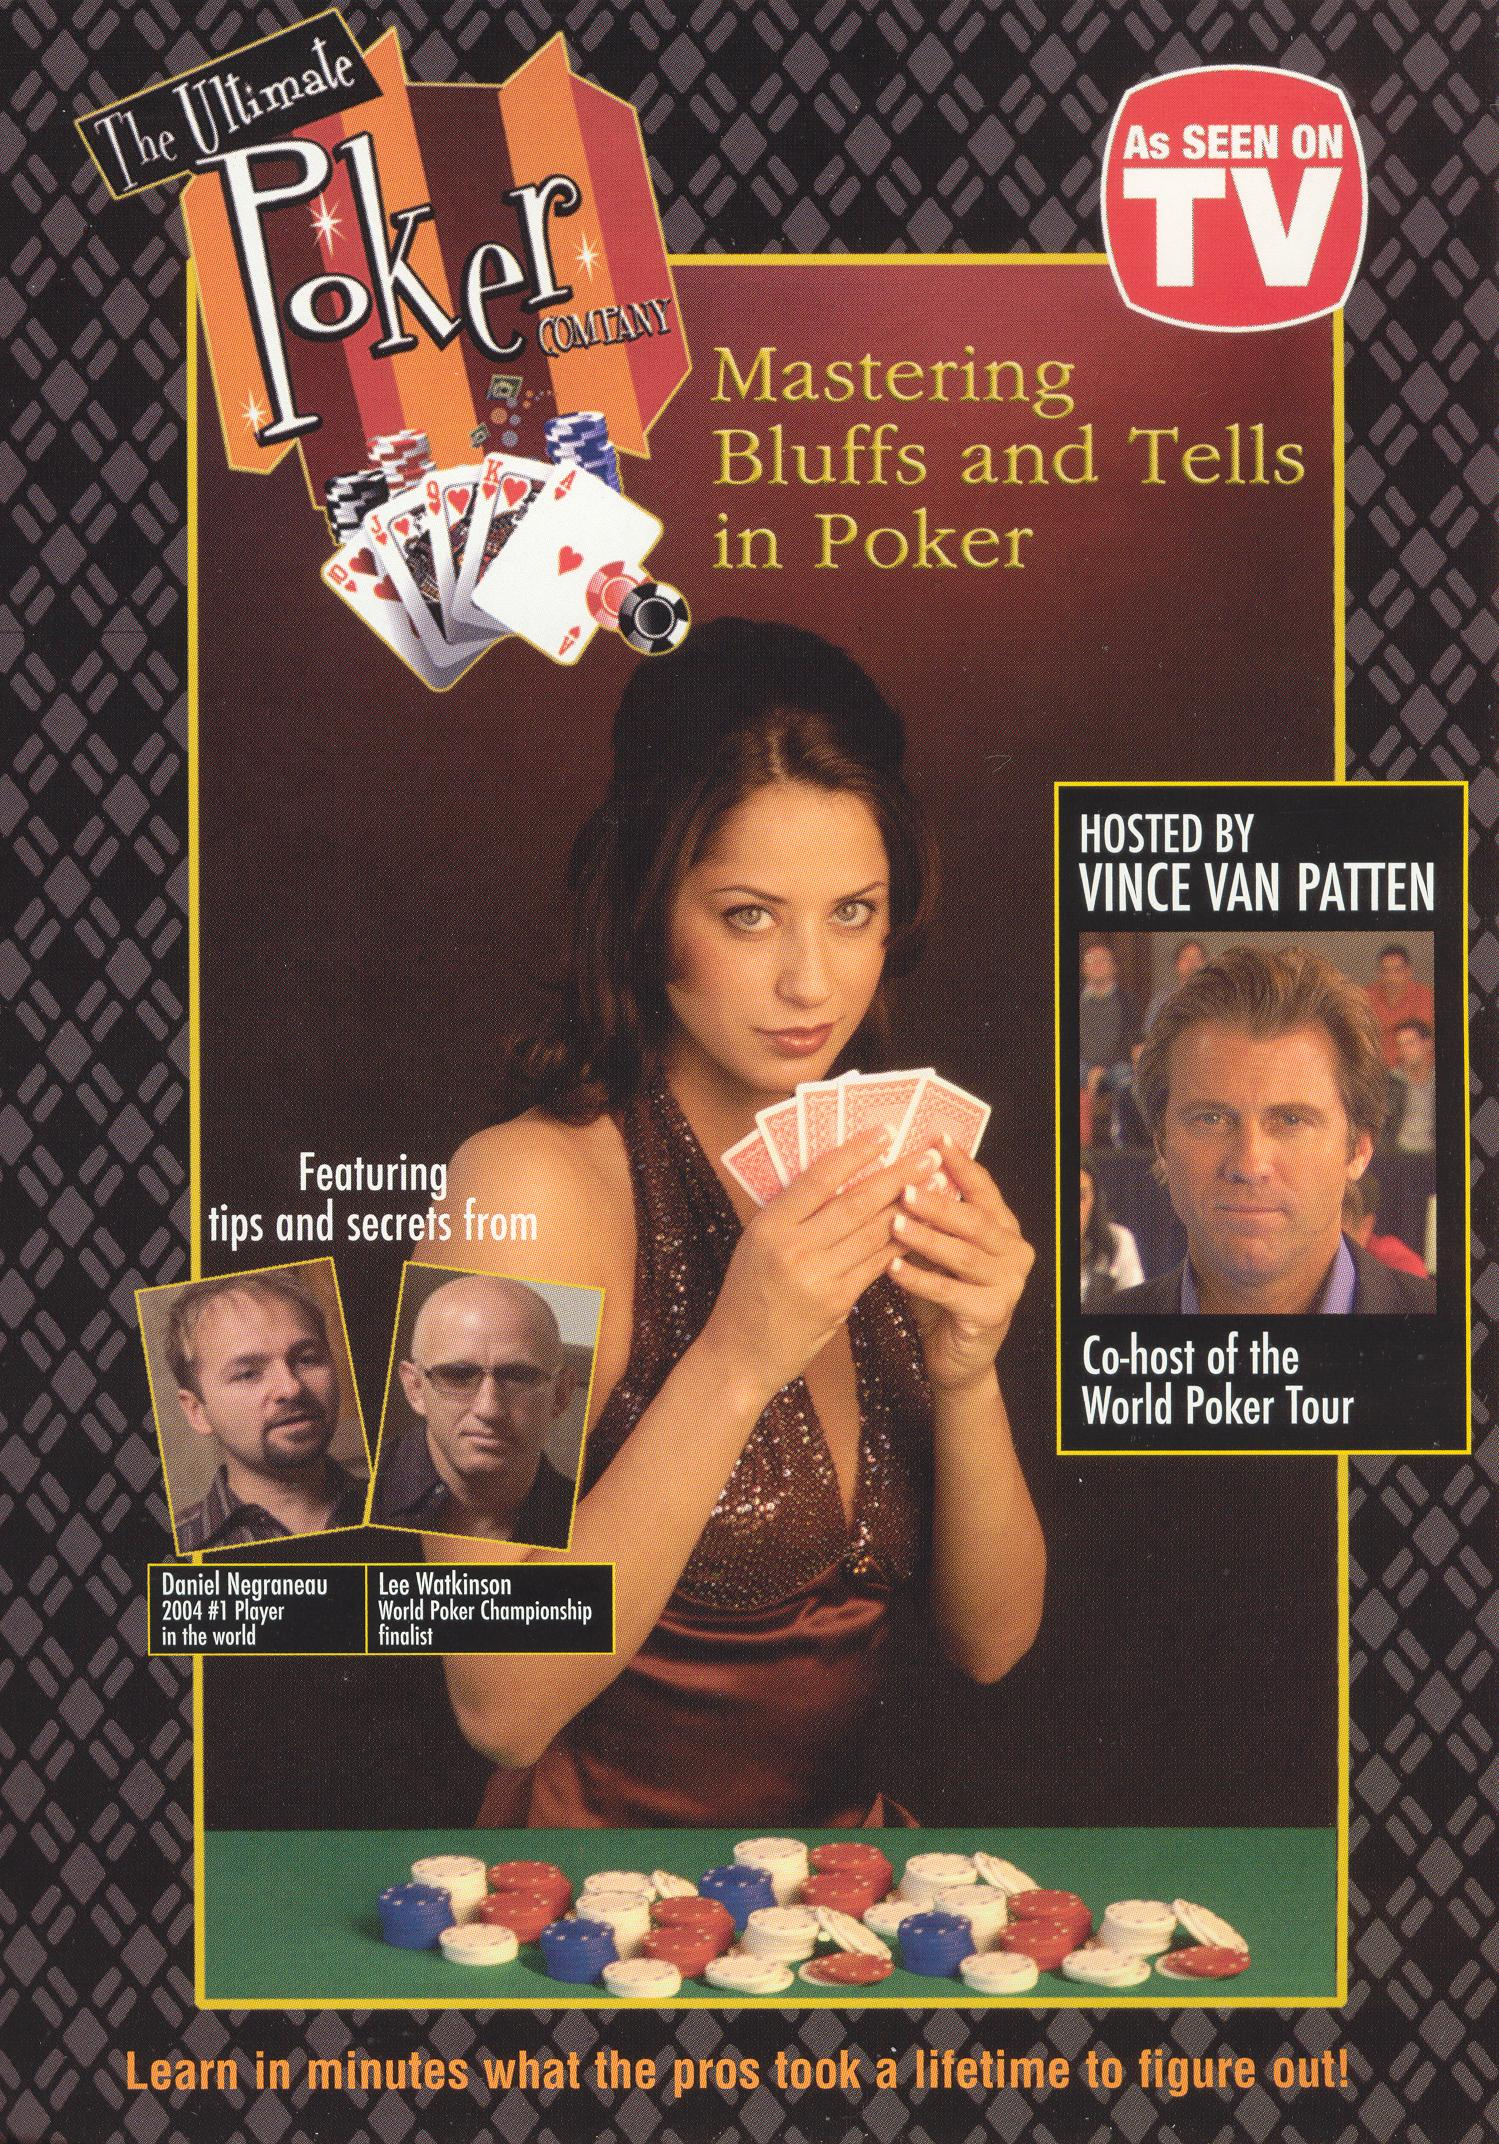 Ultimate Poker's Mastering Bluffs and Tells in Poker